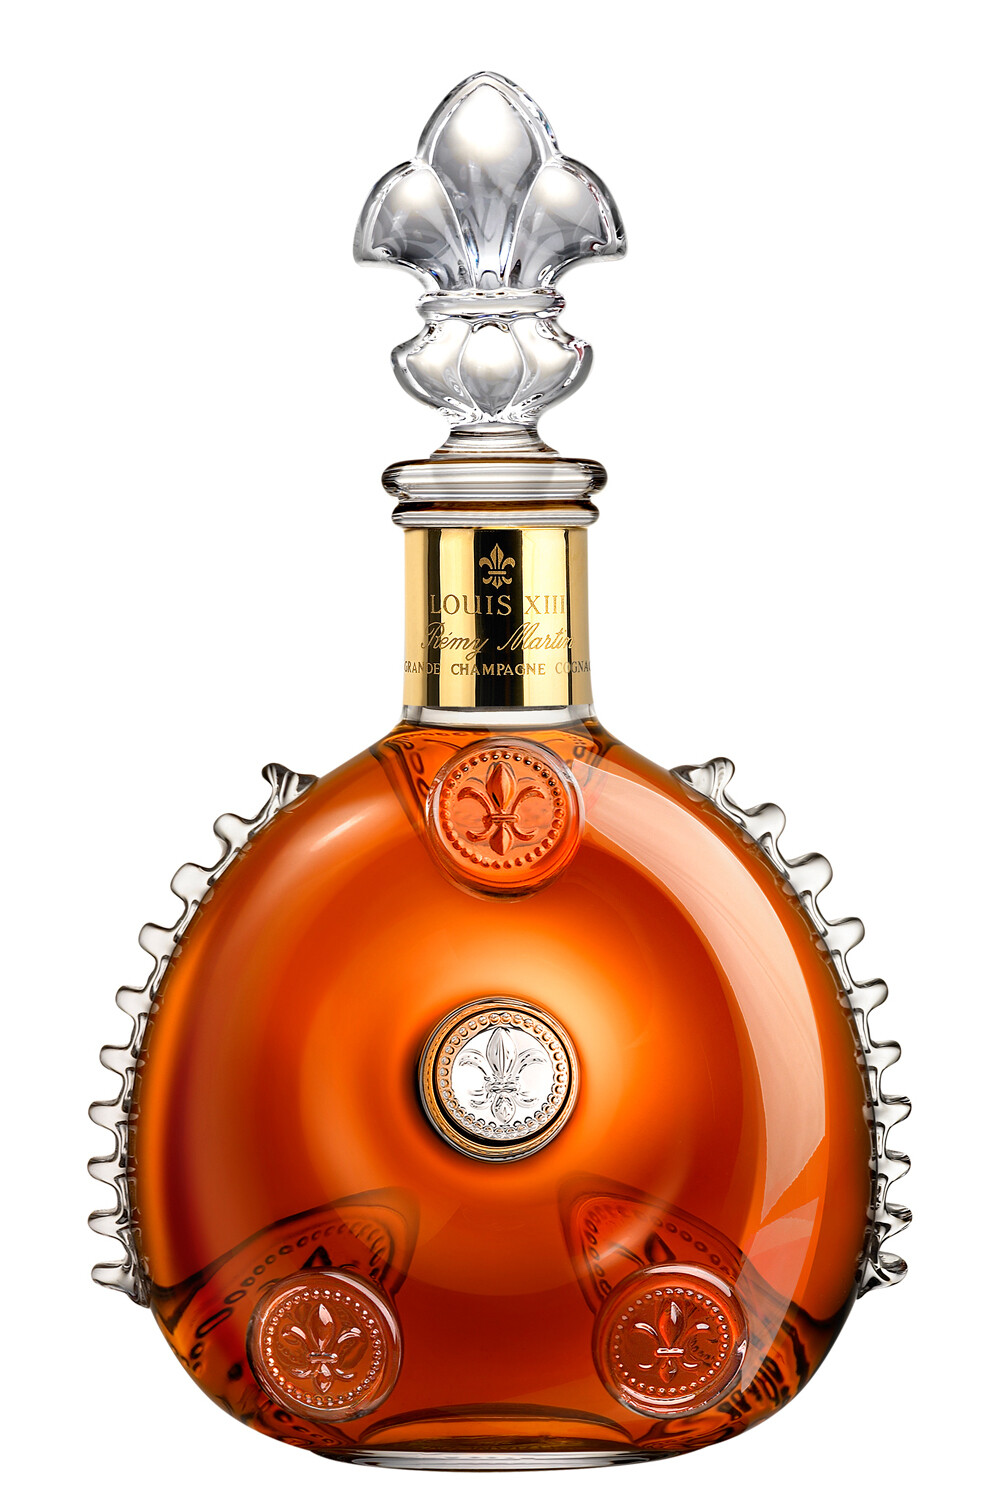 Louis XIII by Remy Martin Cognac